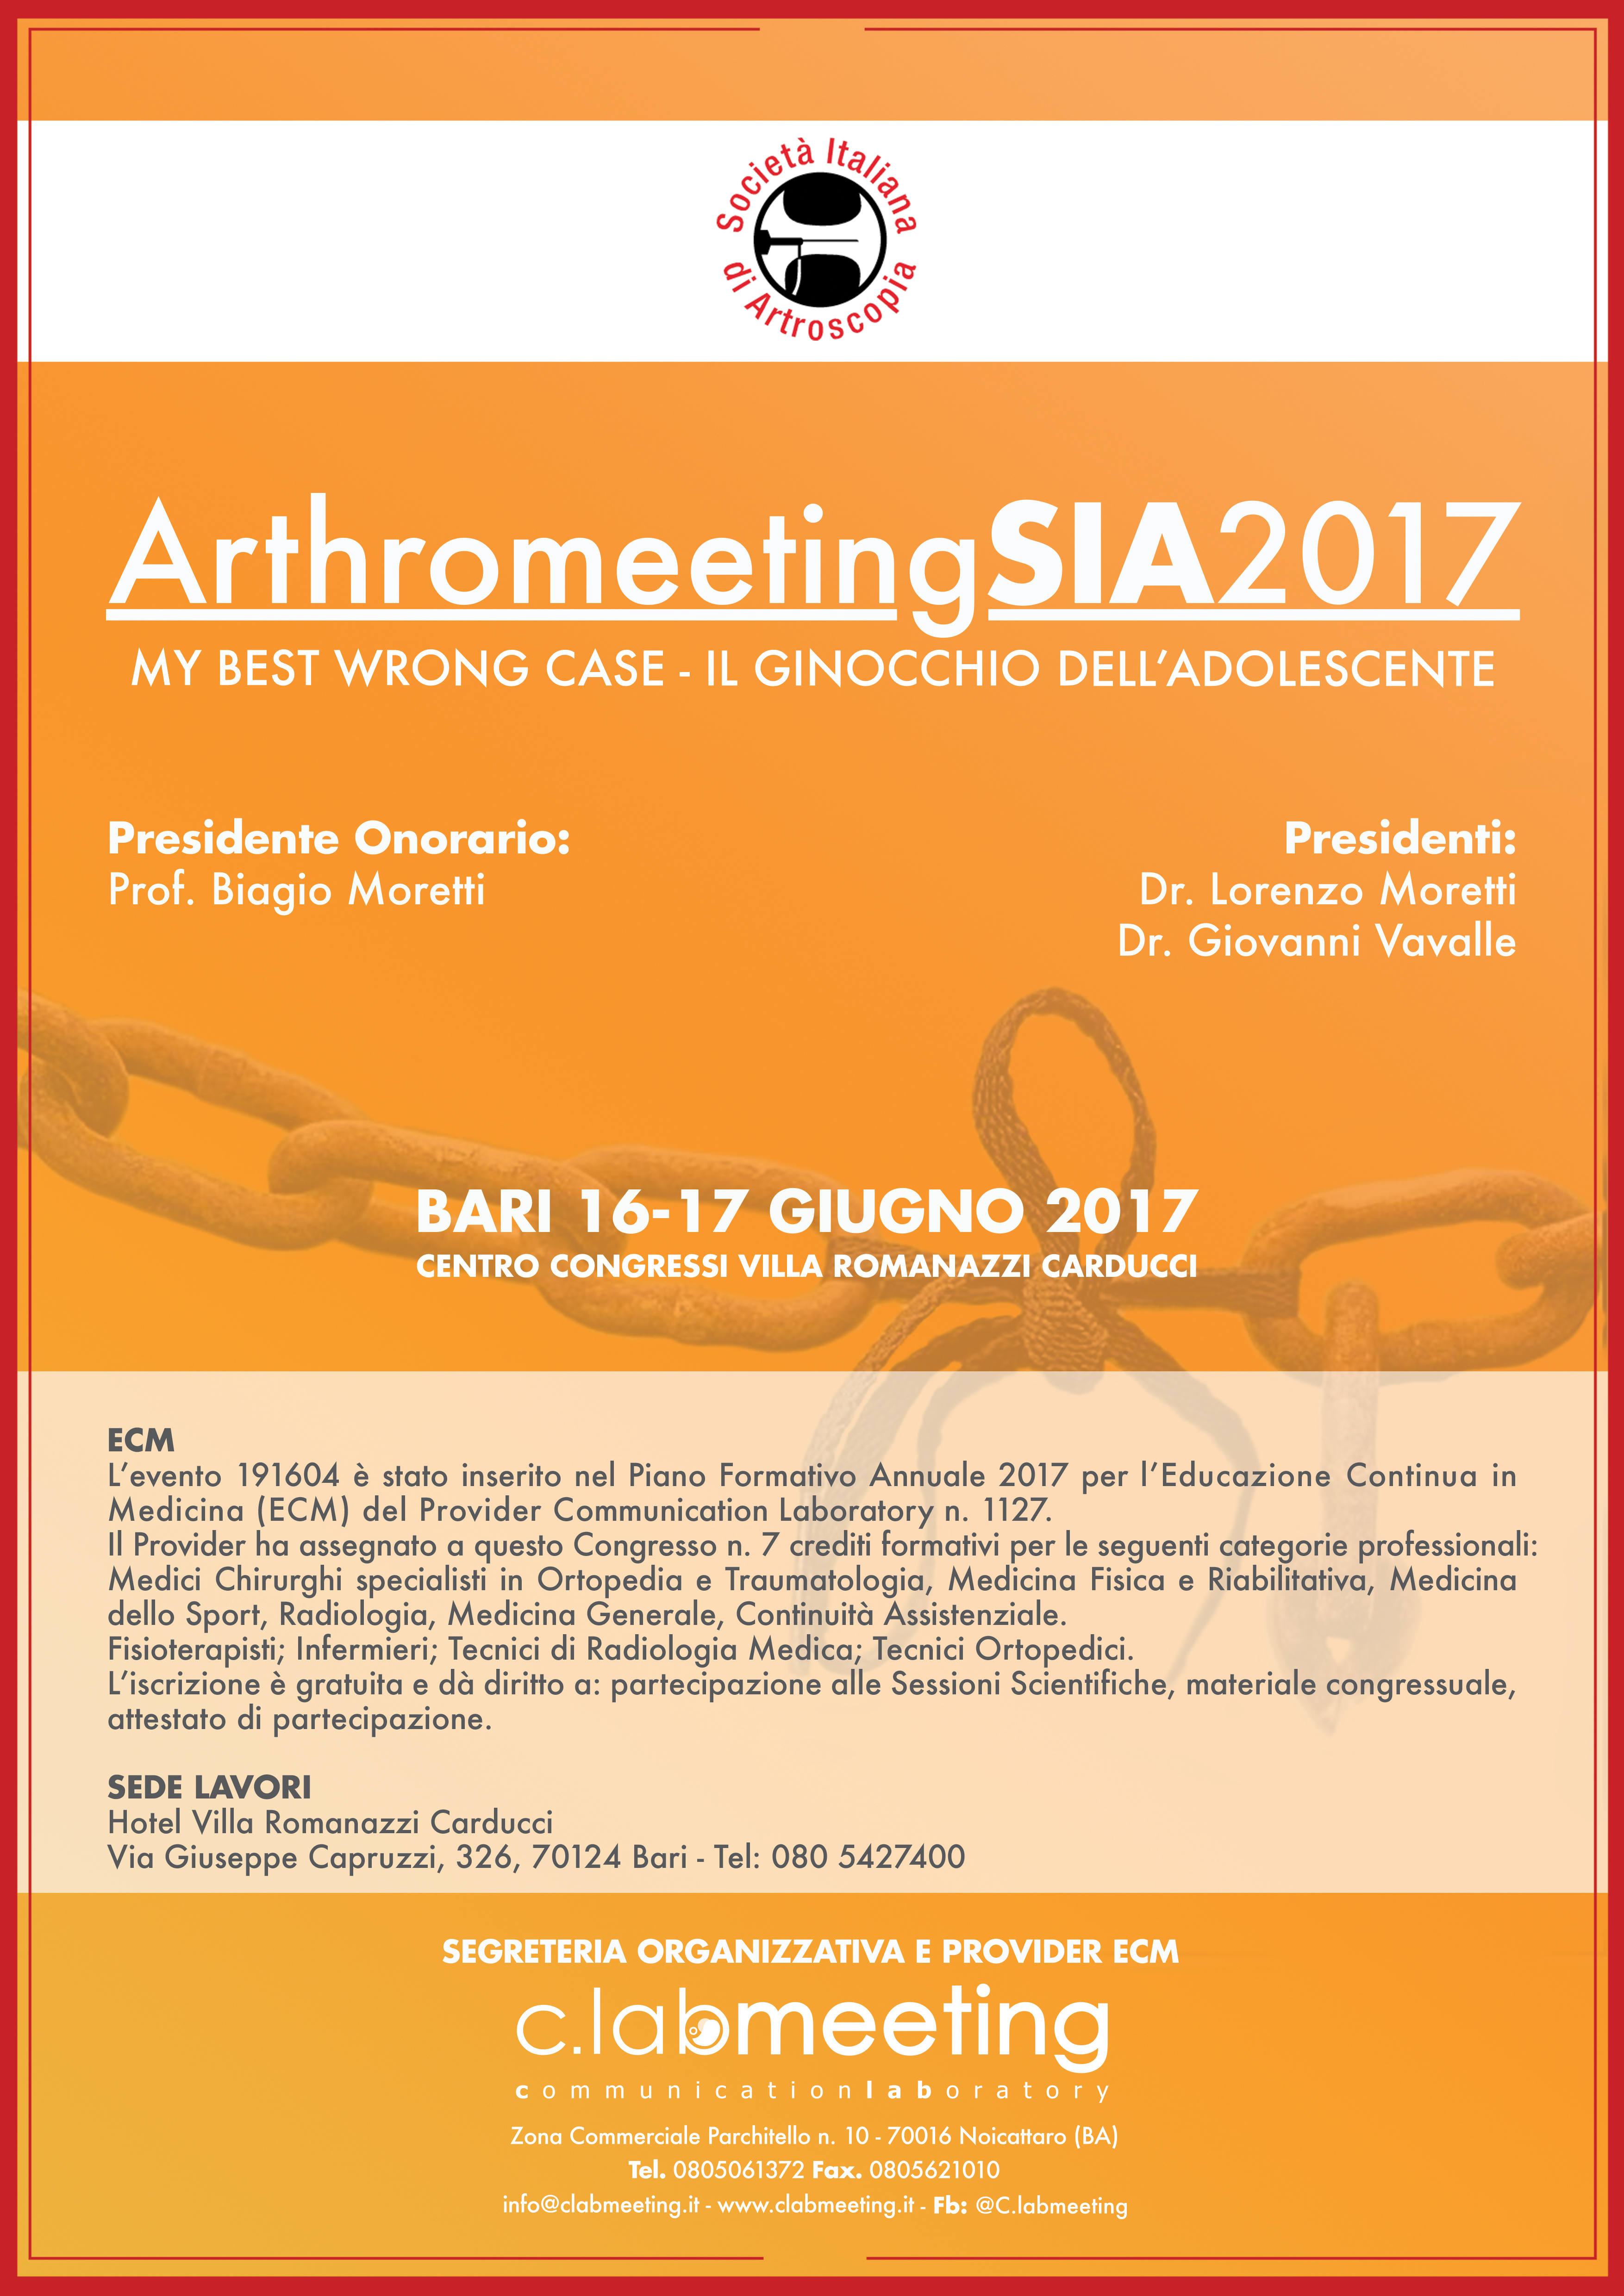 ClabMeeting - ARTHROMEETING 2017